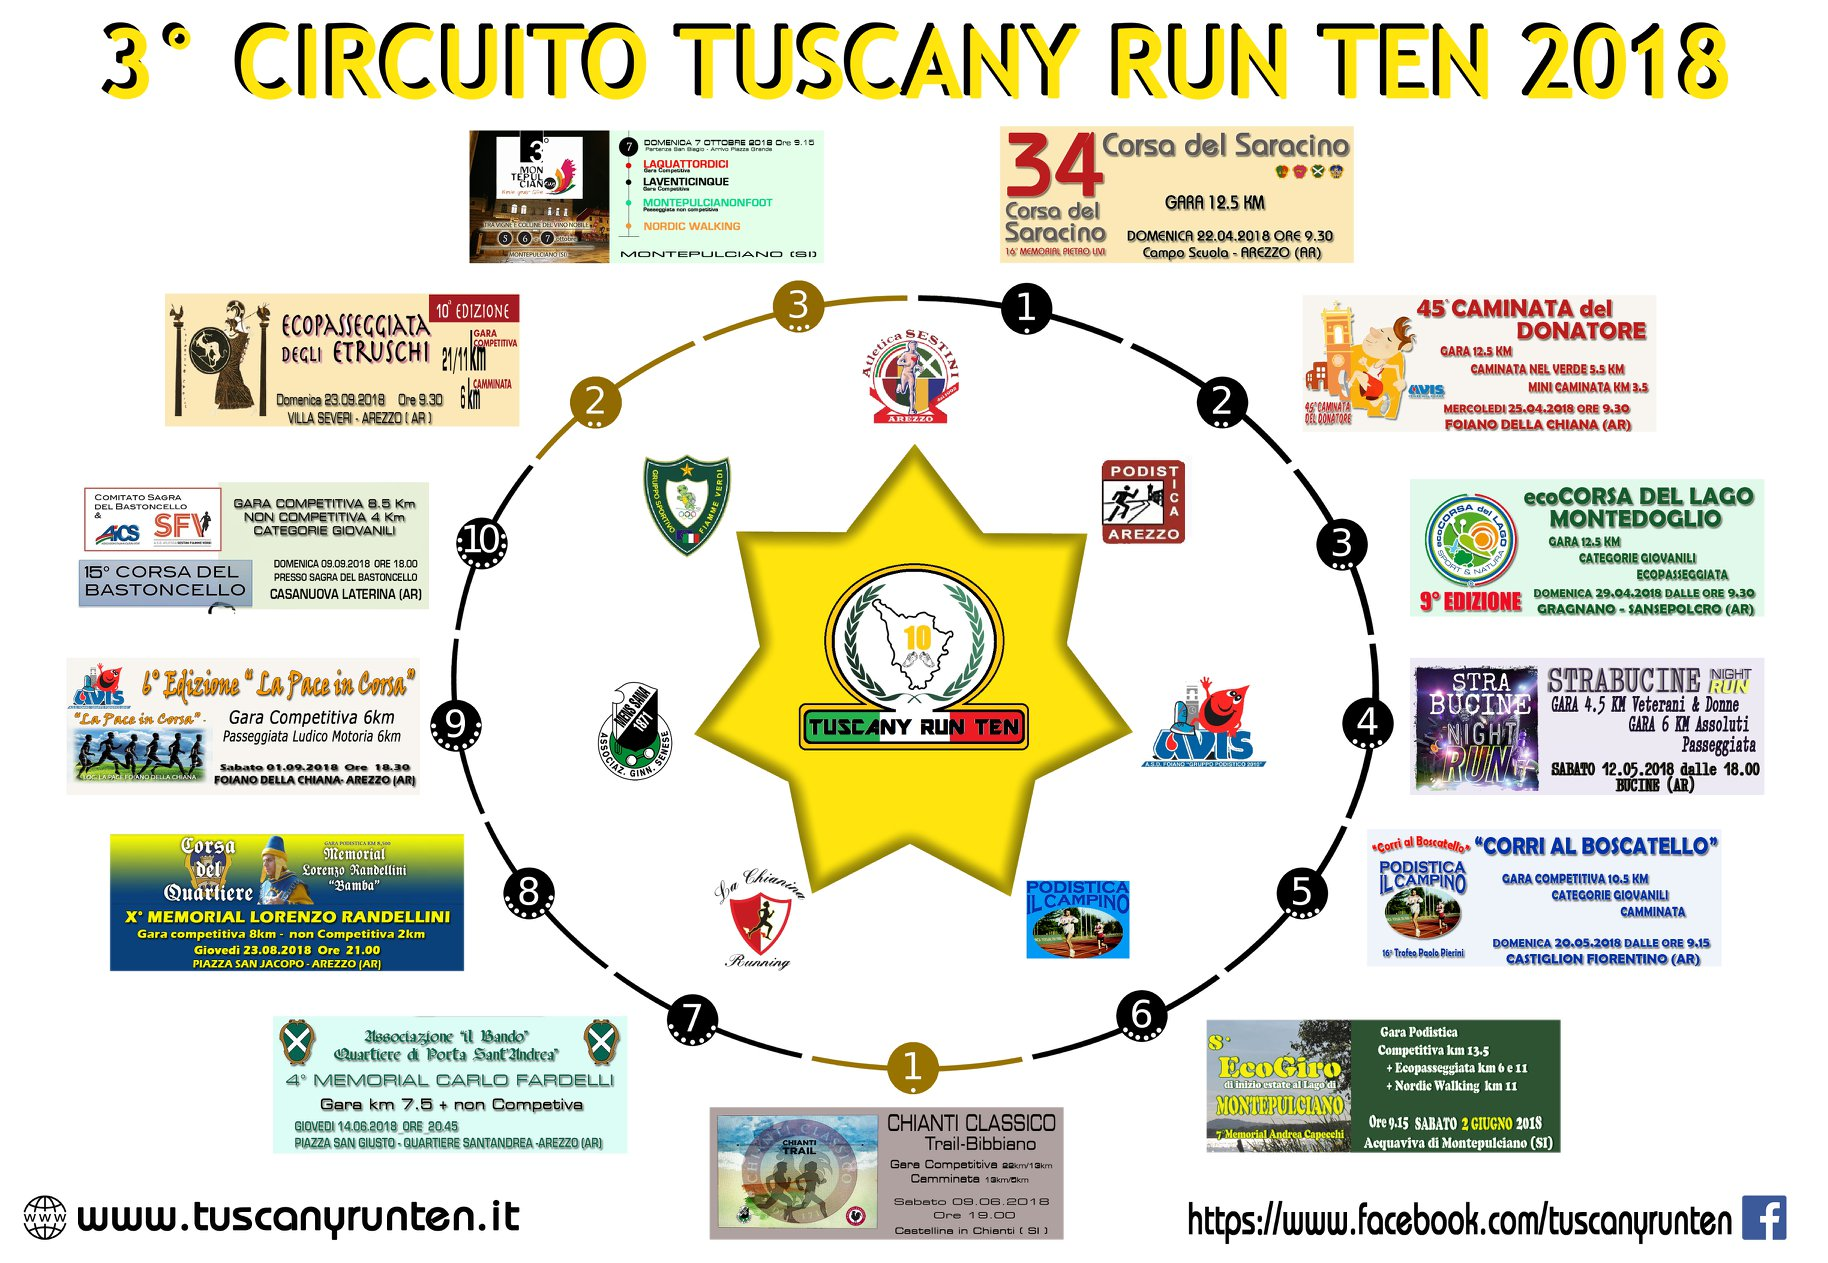 Tuscany Run Ten